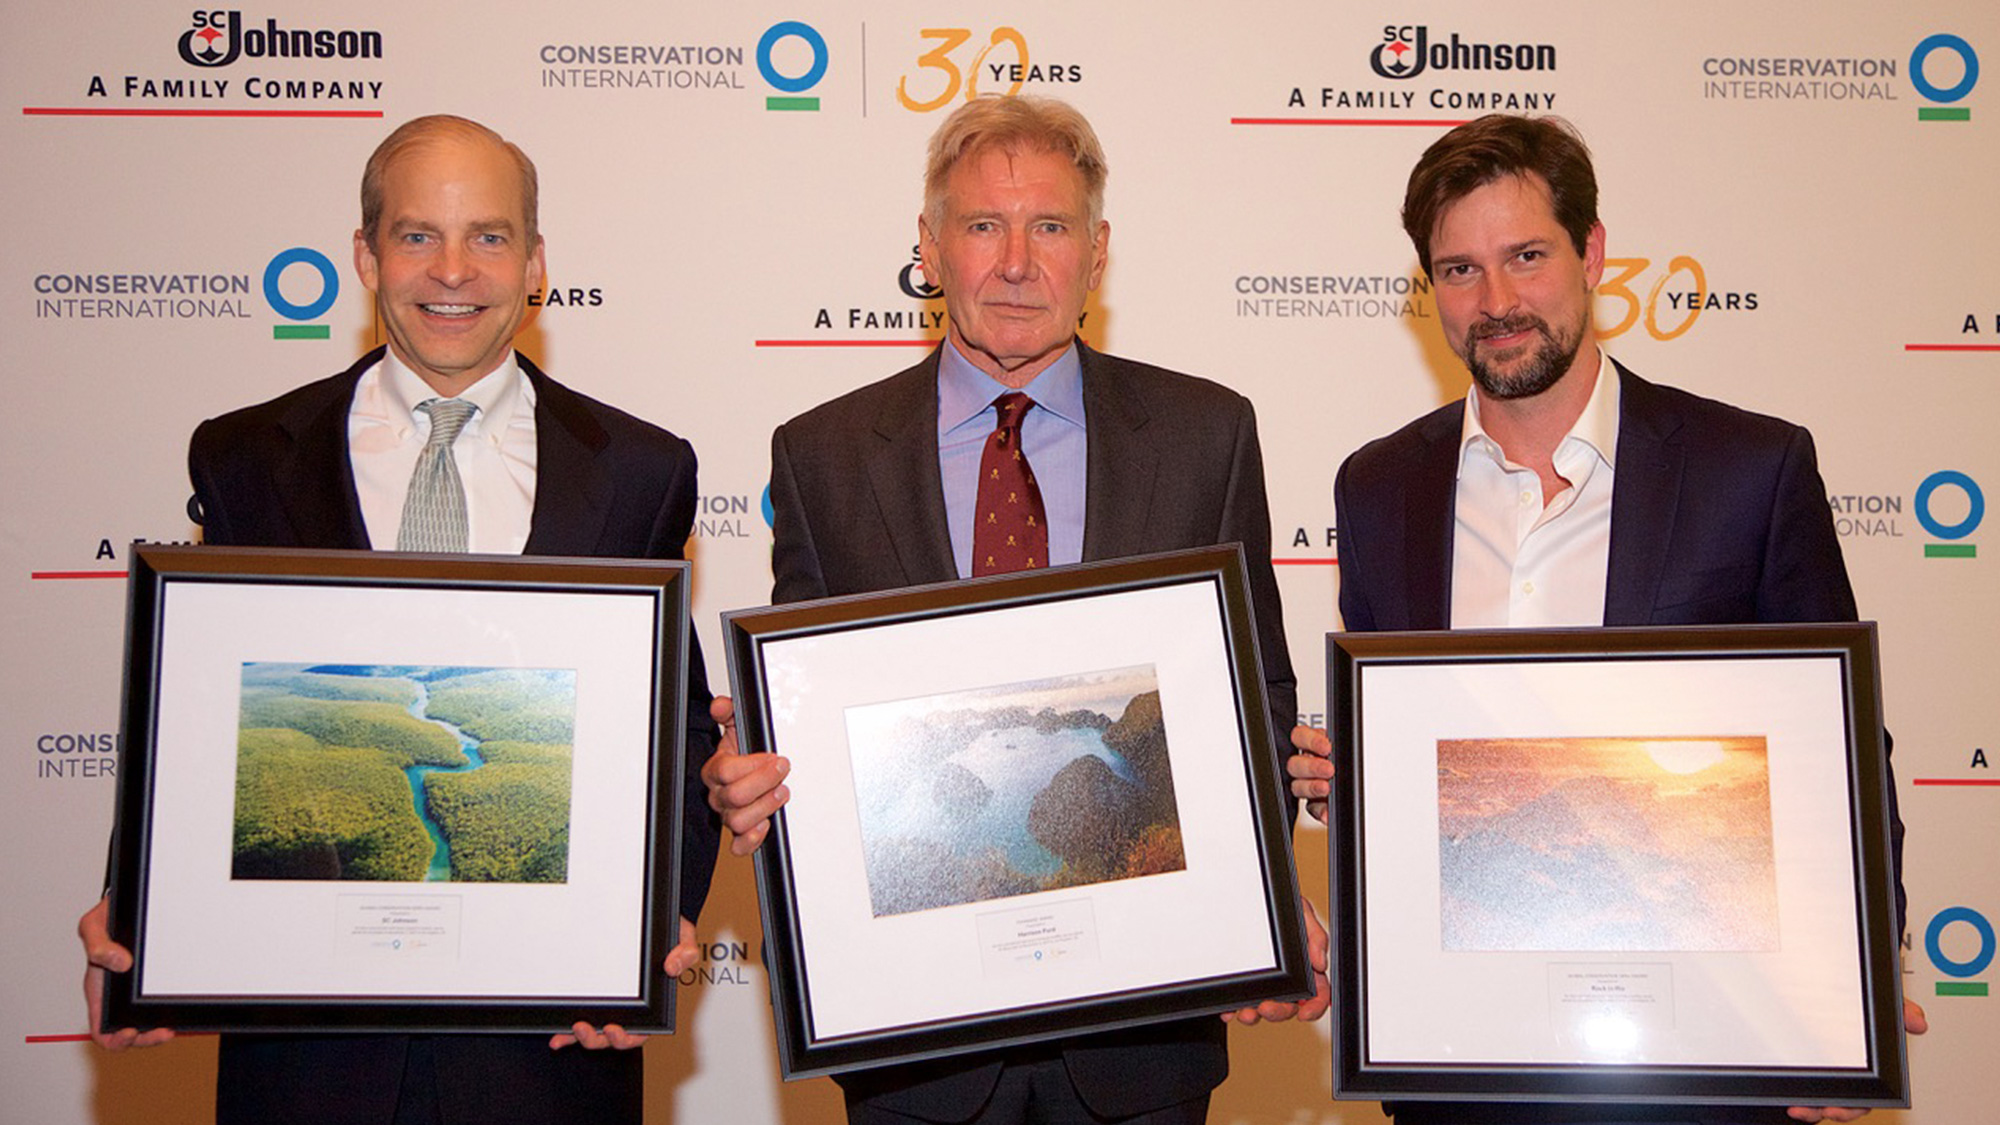 Fisk Johnson, Harrison Ford e Luis Justo aceitam o prémio Global Conservation Hero da Conservação Internacional